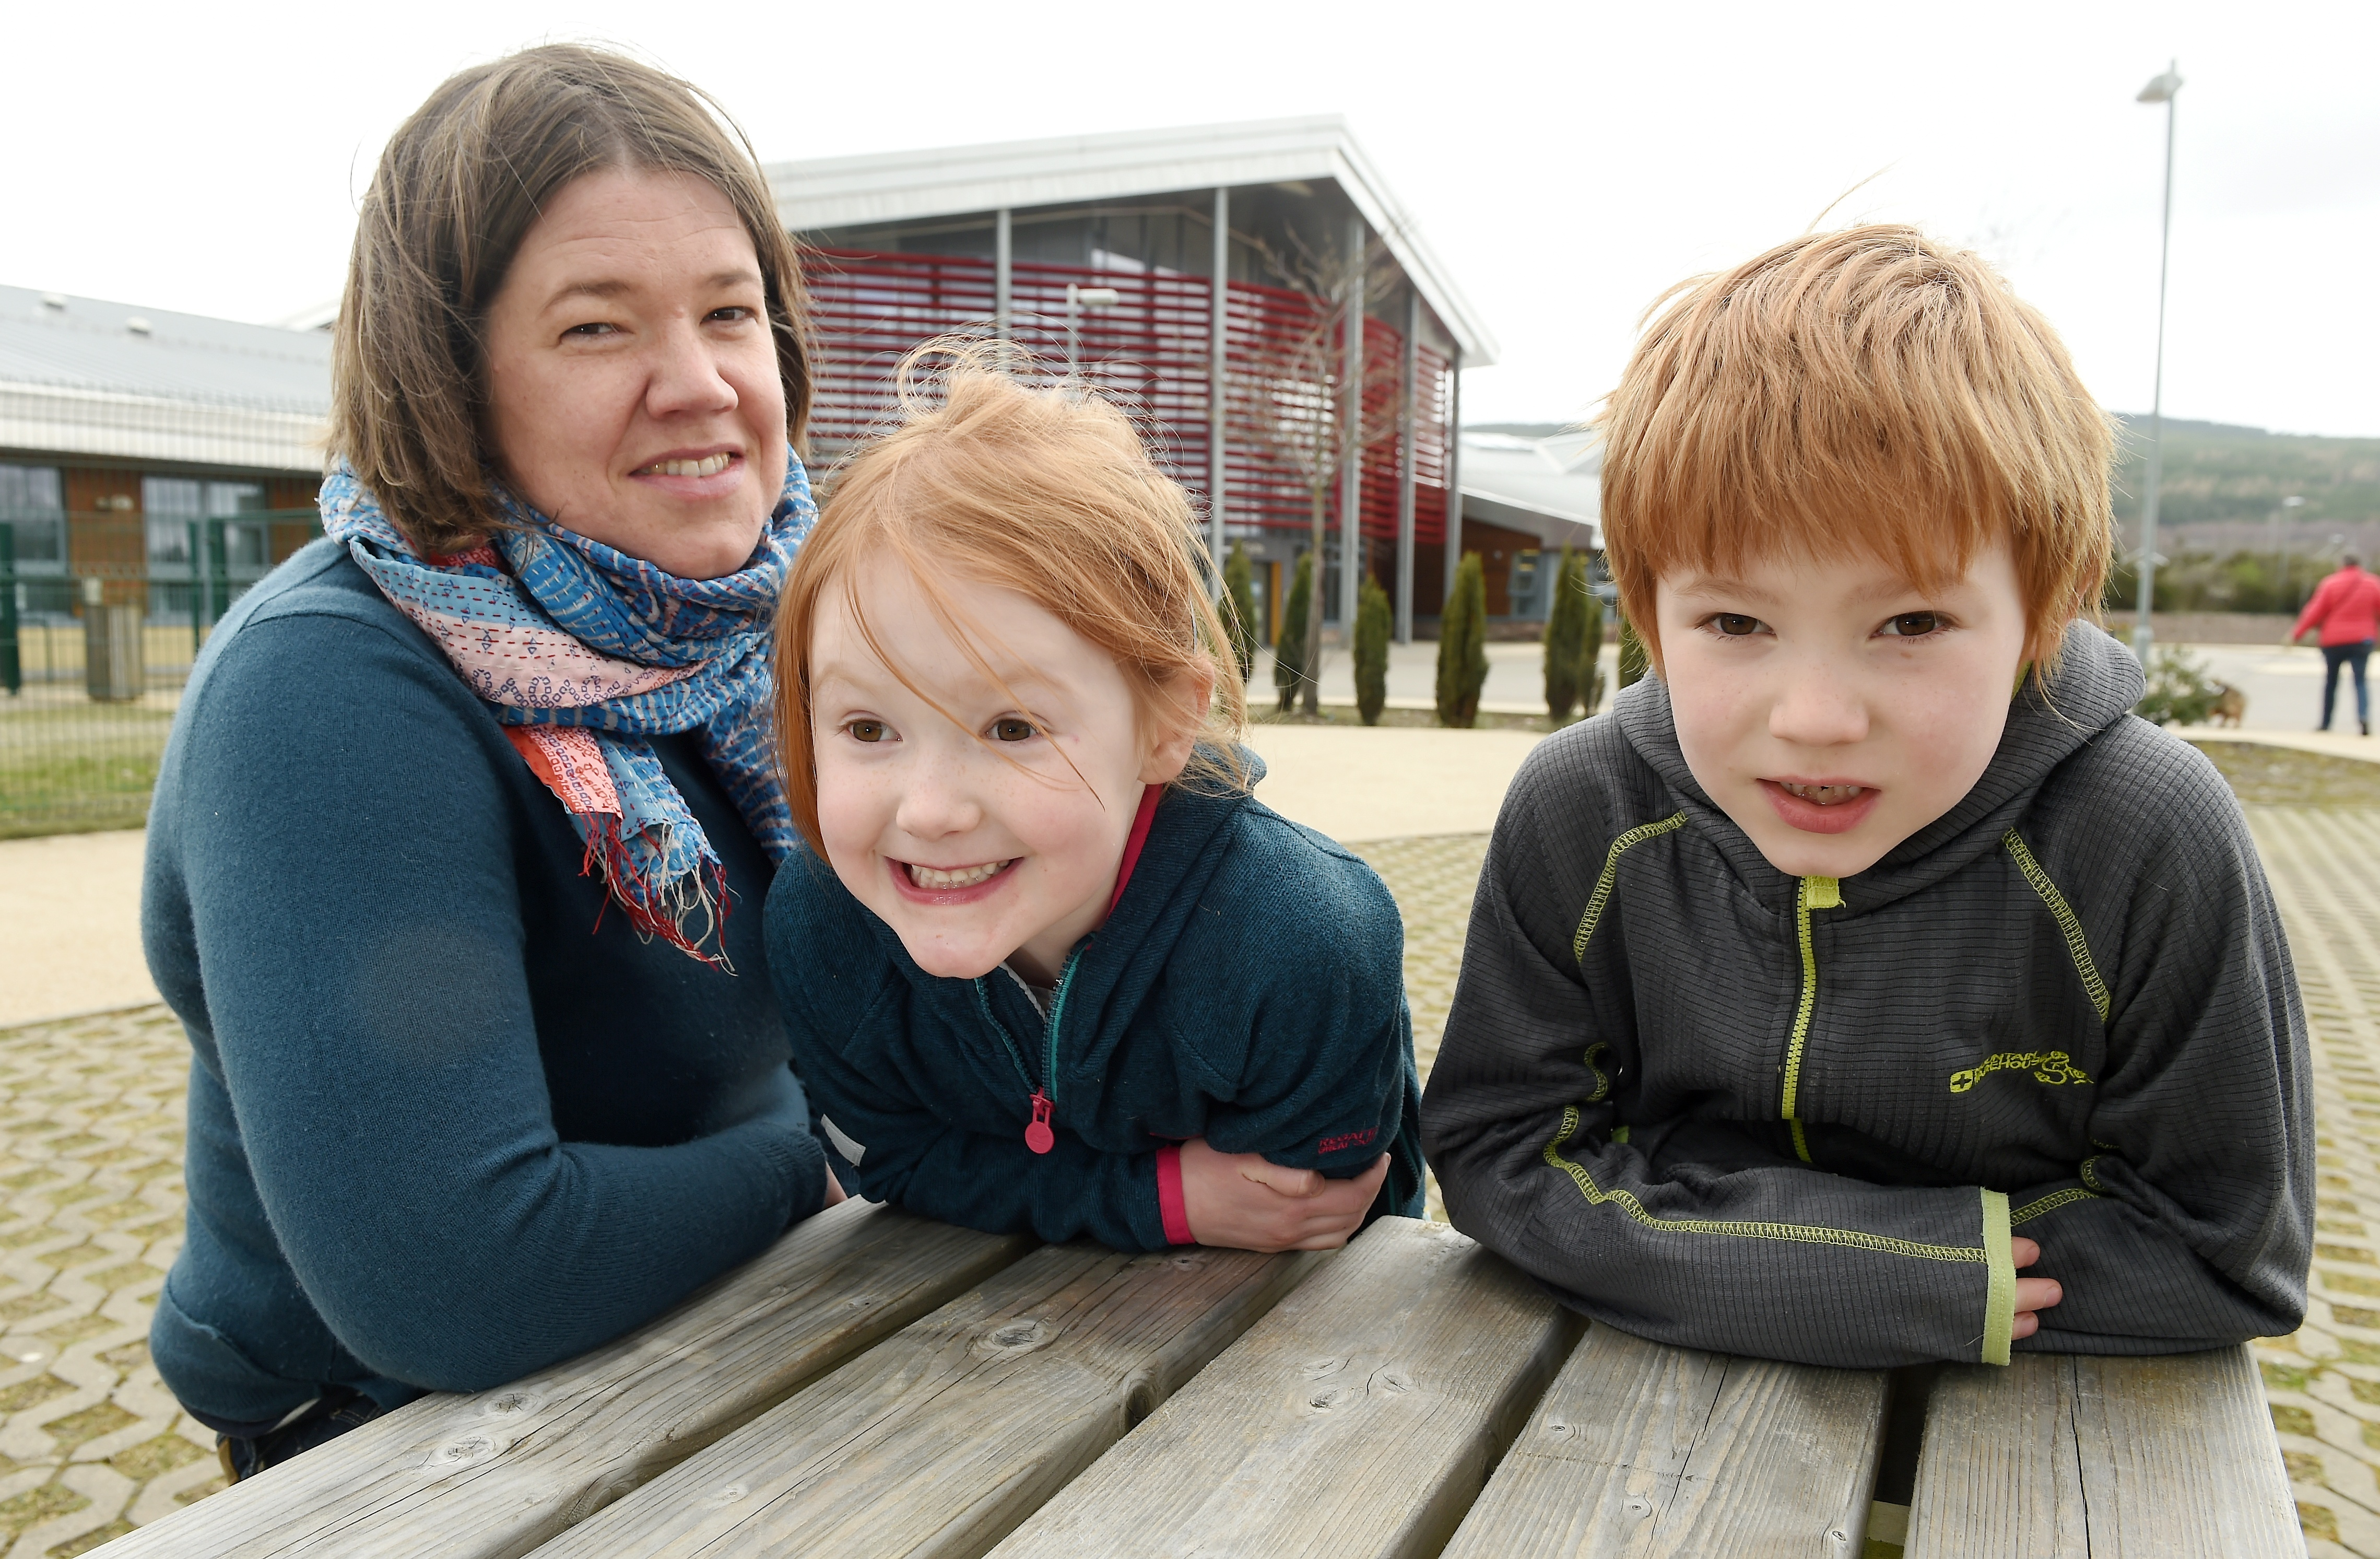 Carole Butler is concerned about the loss of additional support needs staff with her children, Megan and Struan.